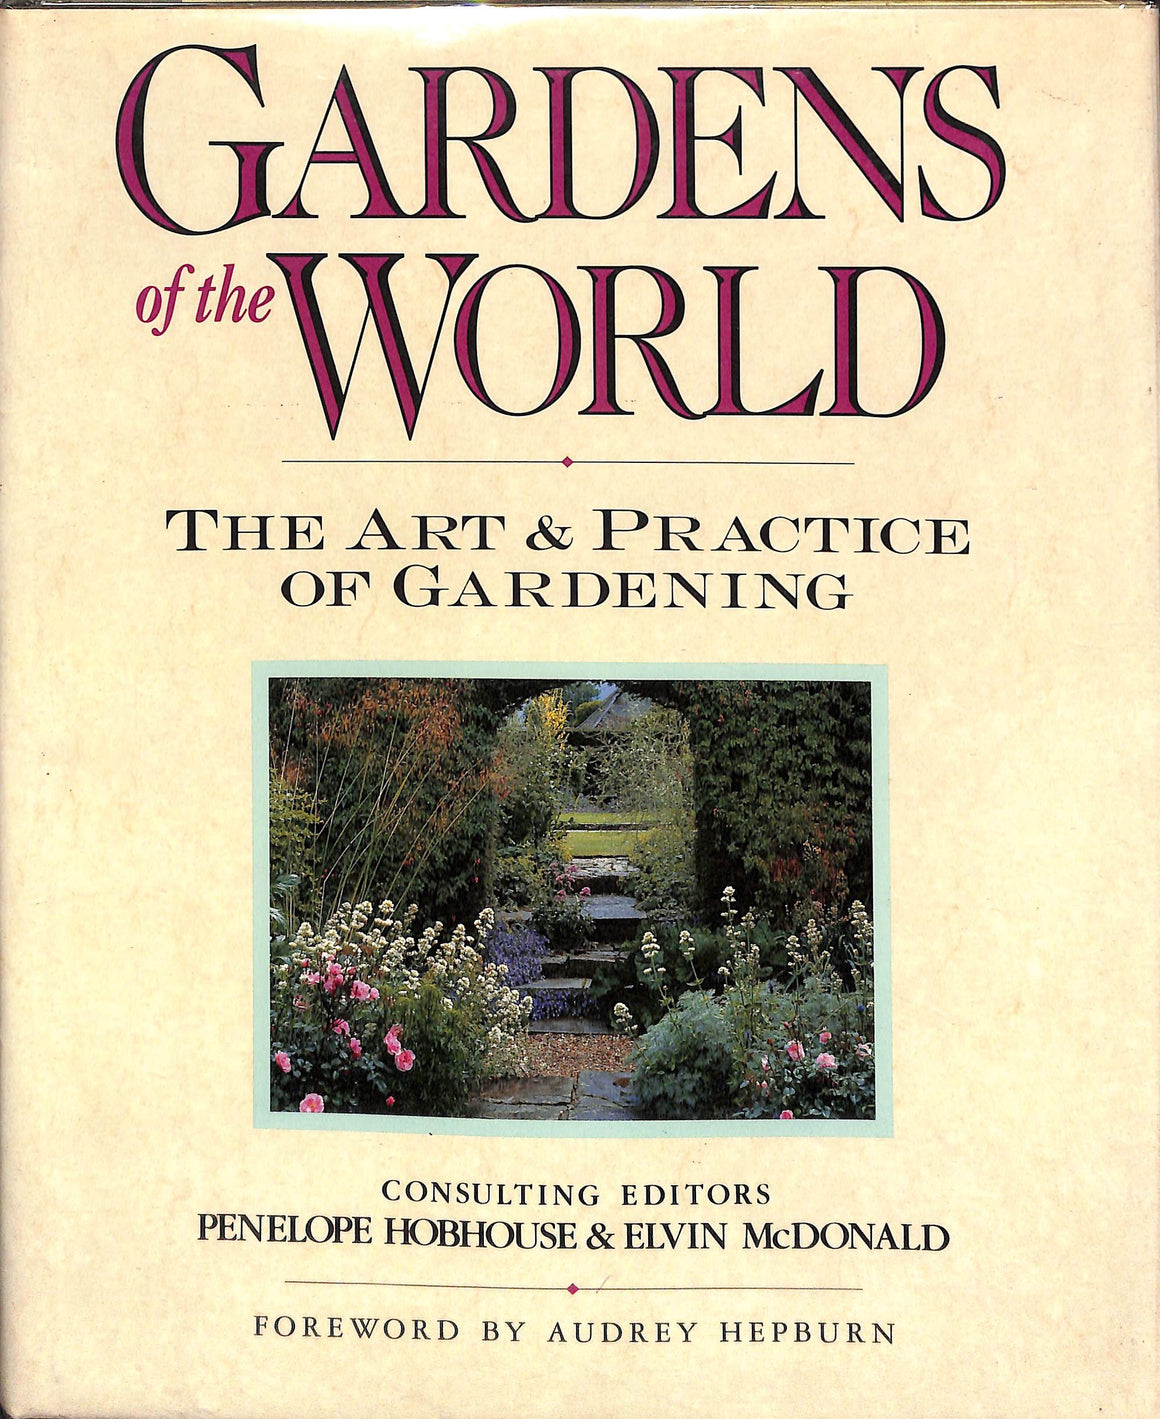 Gardens of the World by Penelope Hobhouse and Elvin McDonald